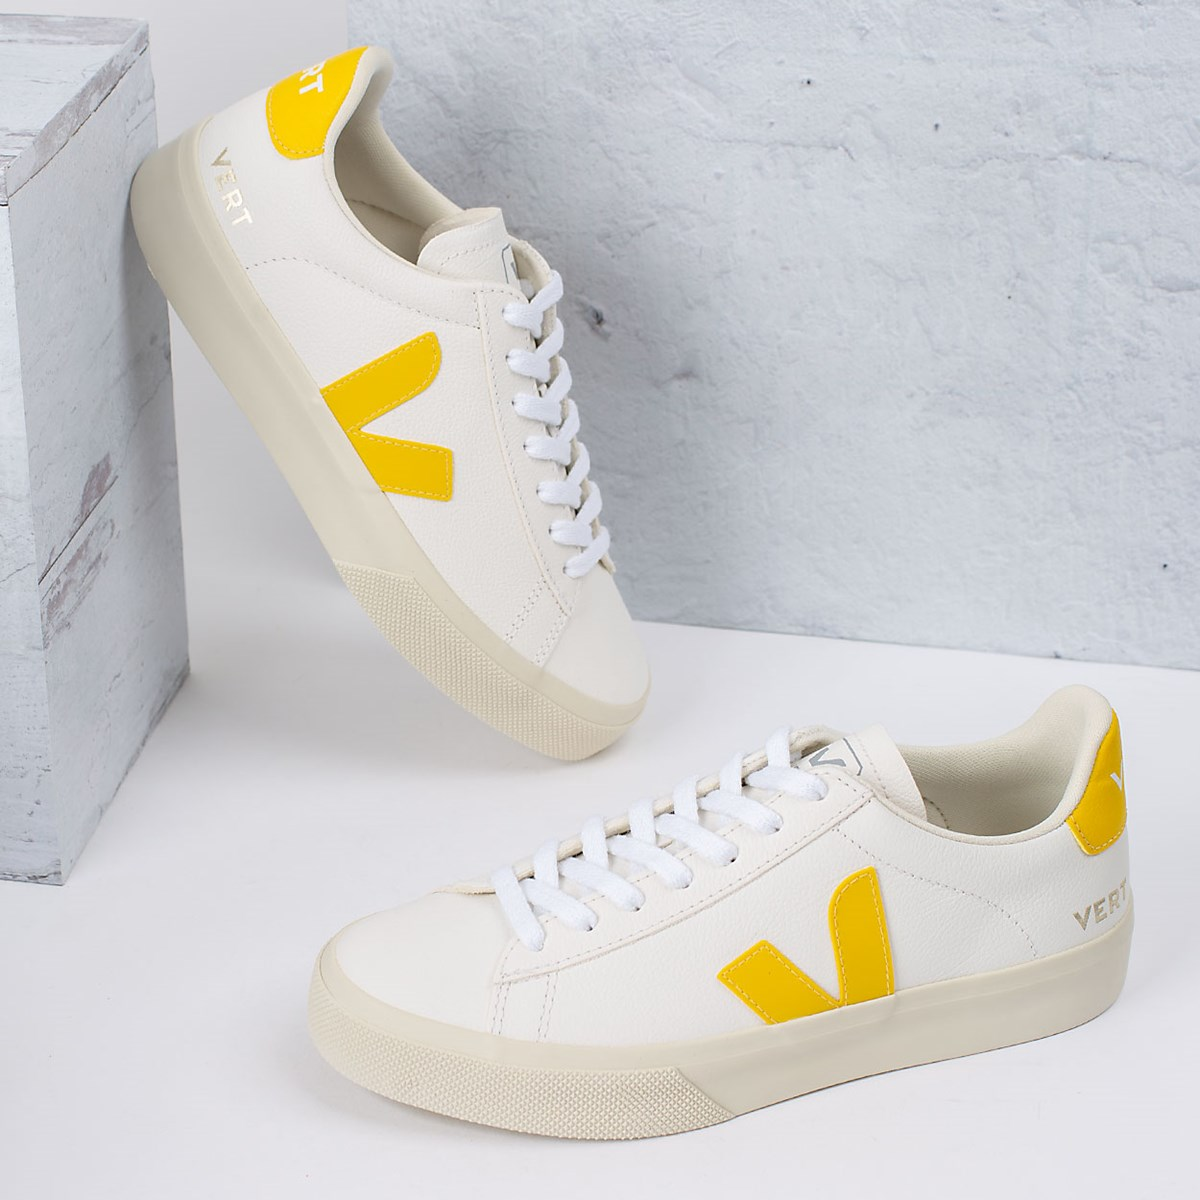 Tênis Vert Shoes Campo Chromefree Leather Extra White Tonic CP052290